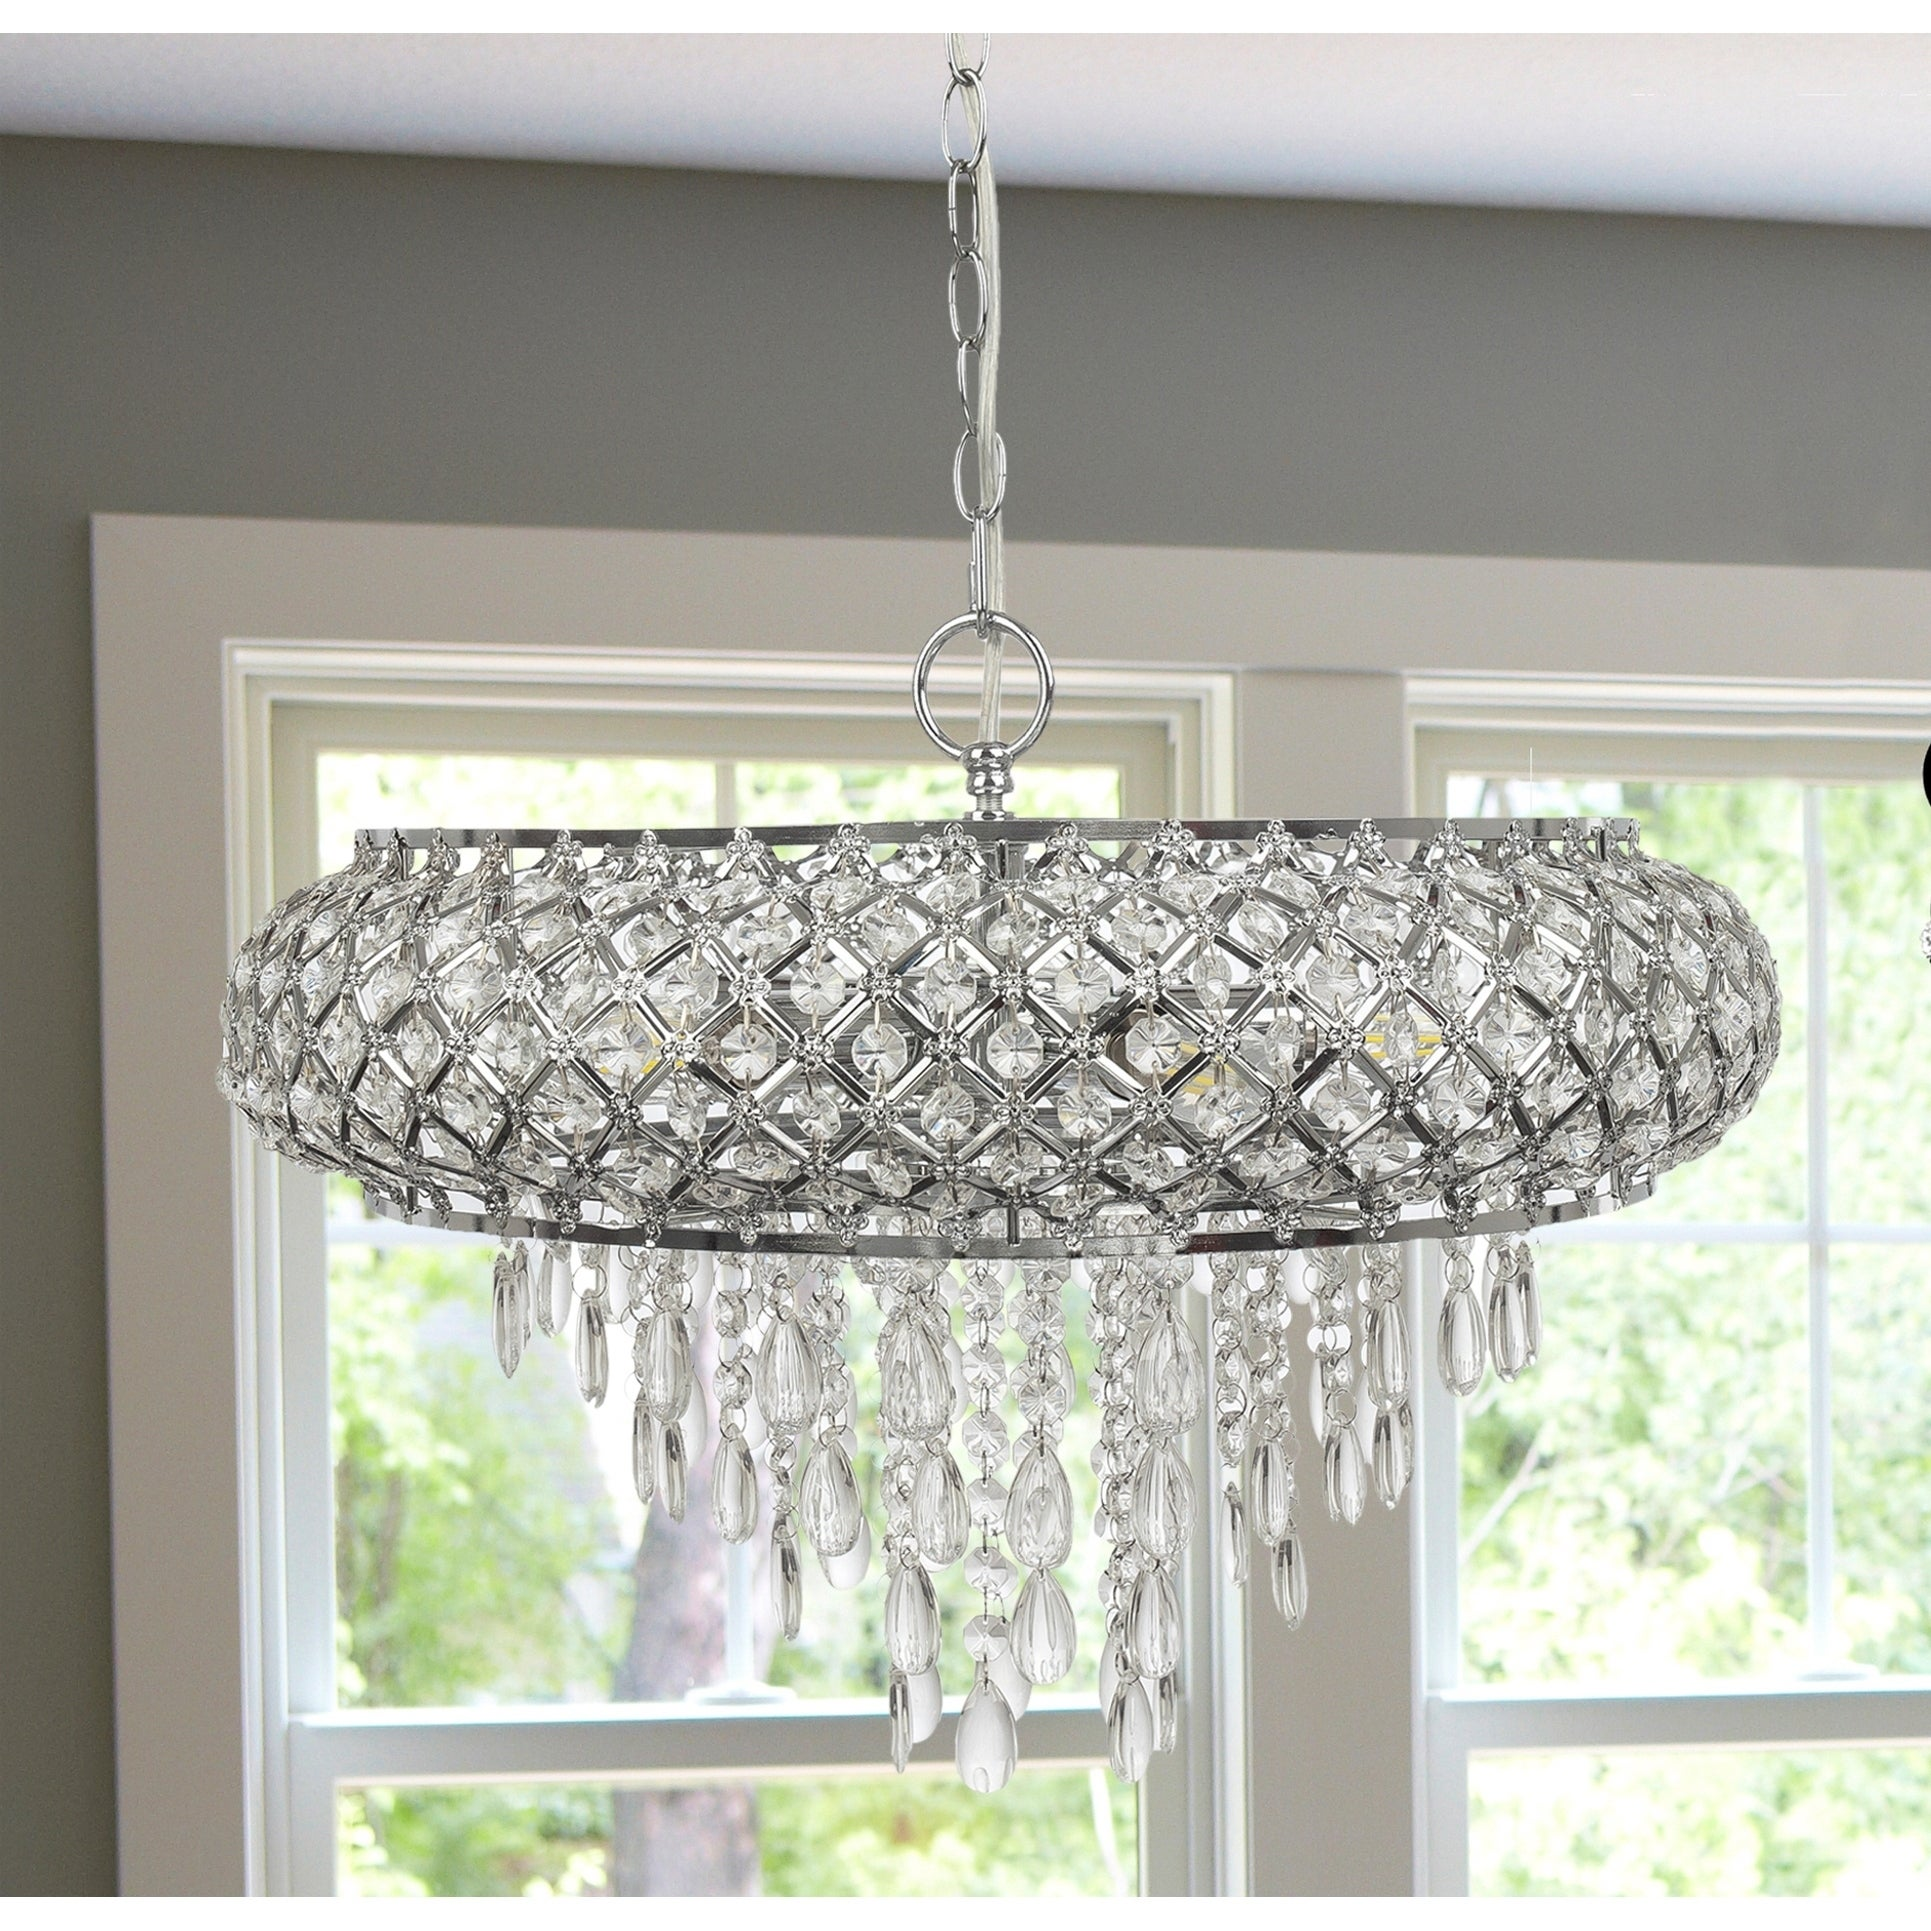 Silver Orchid Erlanger Clear and Chrome Tiered Crystal Glass Plug-in and Hardwire Hanging Chandelier